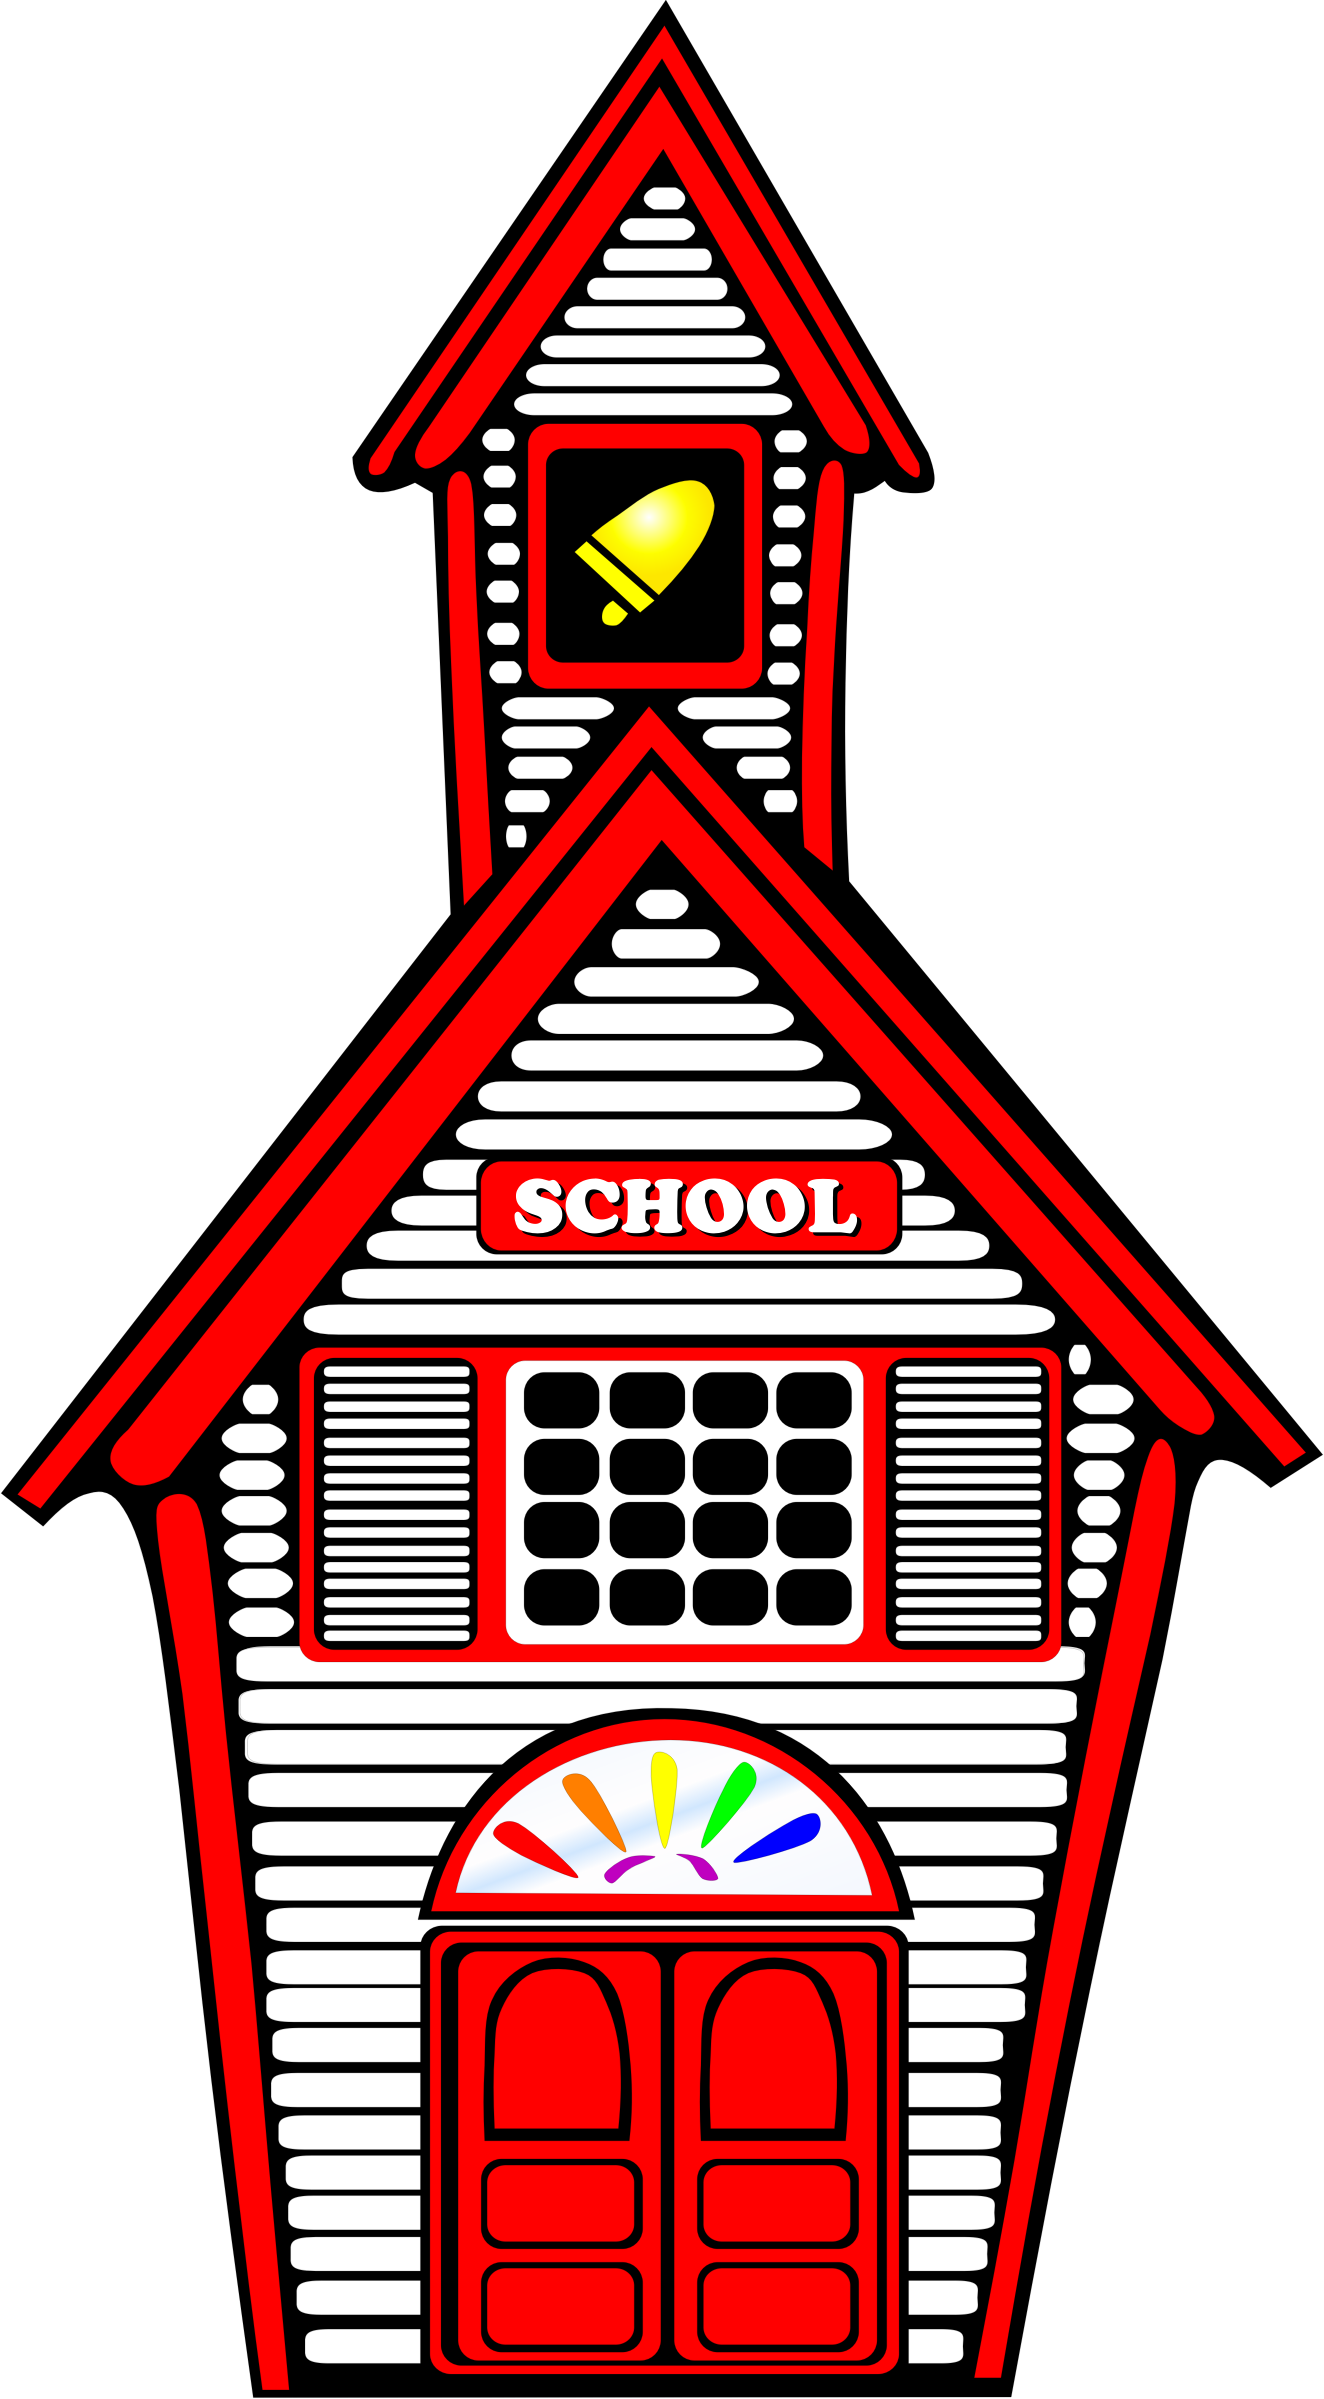 Clipart school house freeuse download Clipart - White Schoolhouse freeuse download